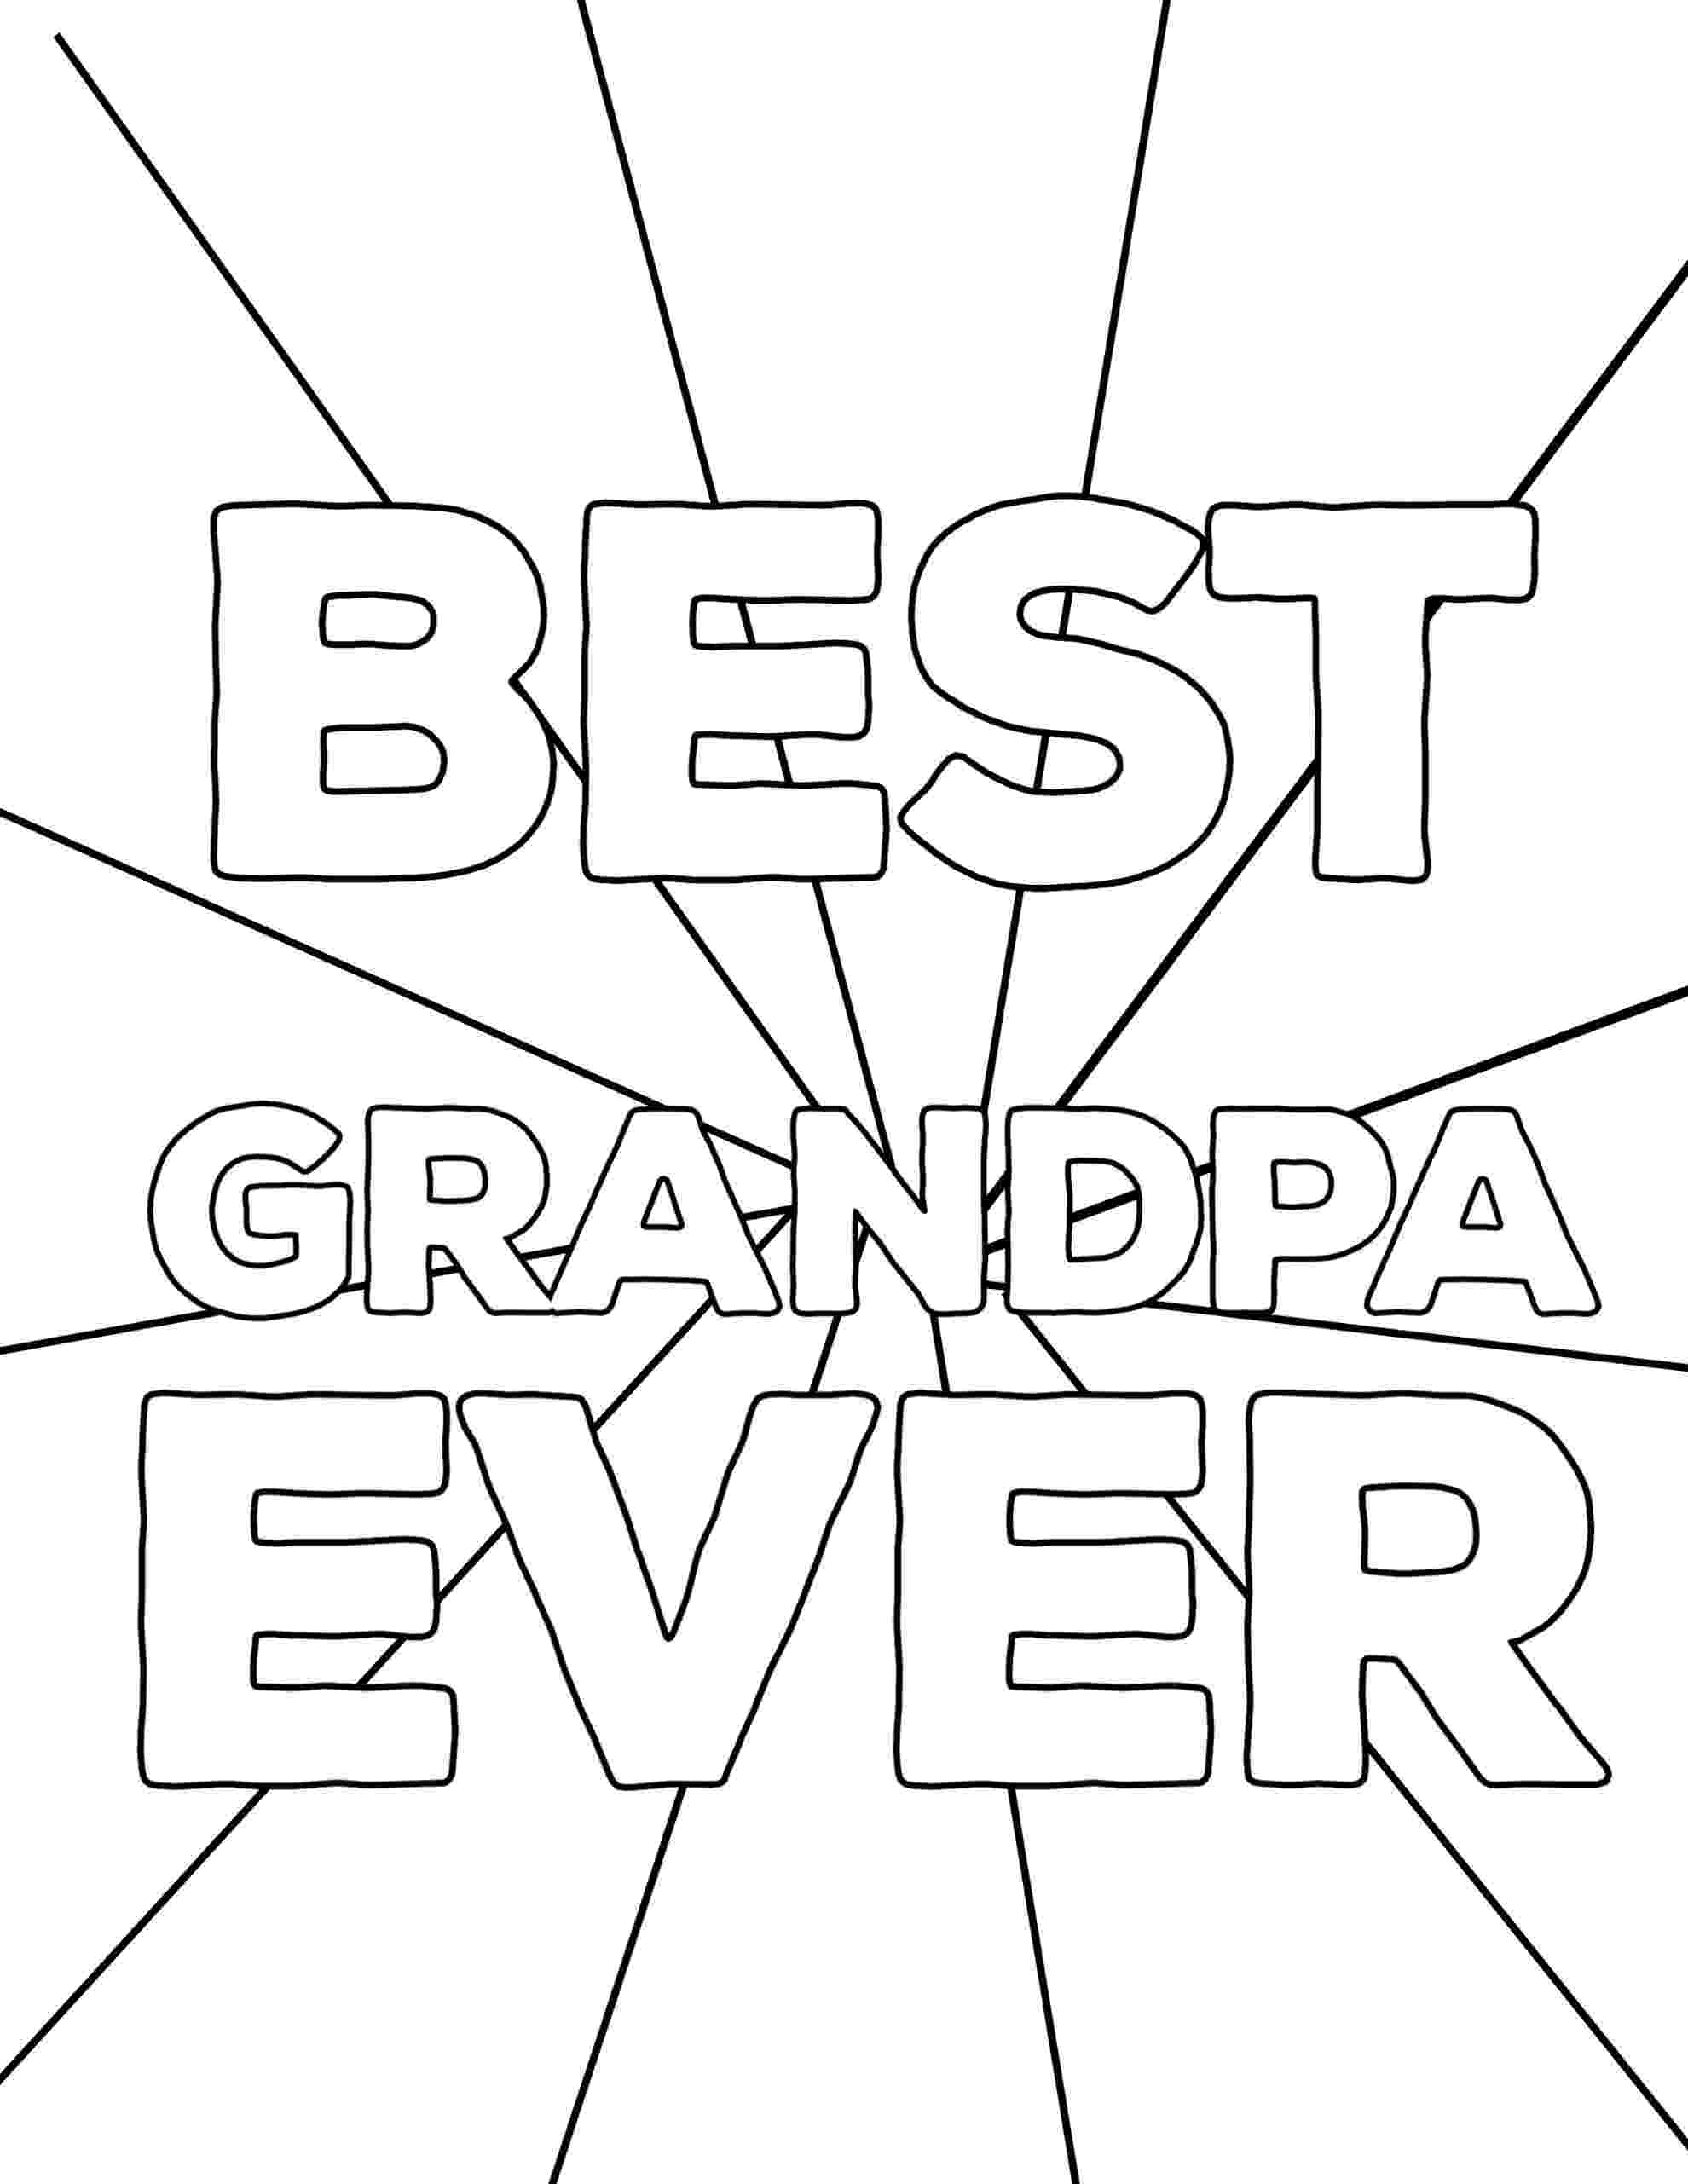 fathers day coloring pages for grandpa 20 best images about grandparent39s day on pinterest love day coloring grandpa fathers pages for